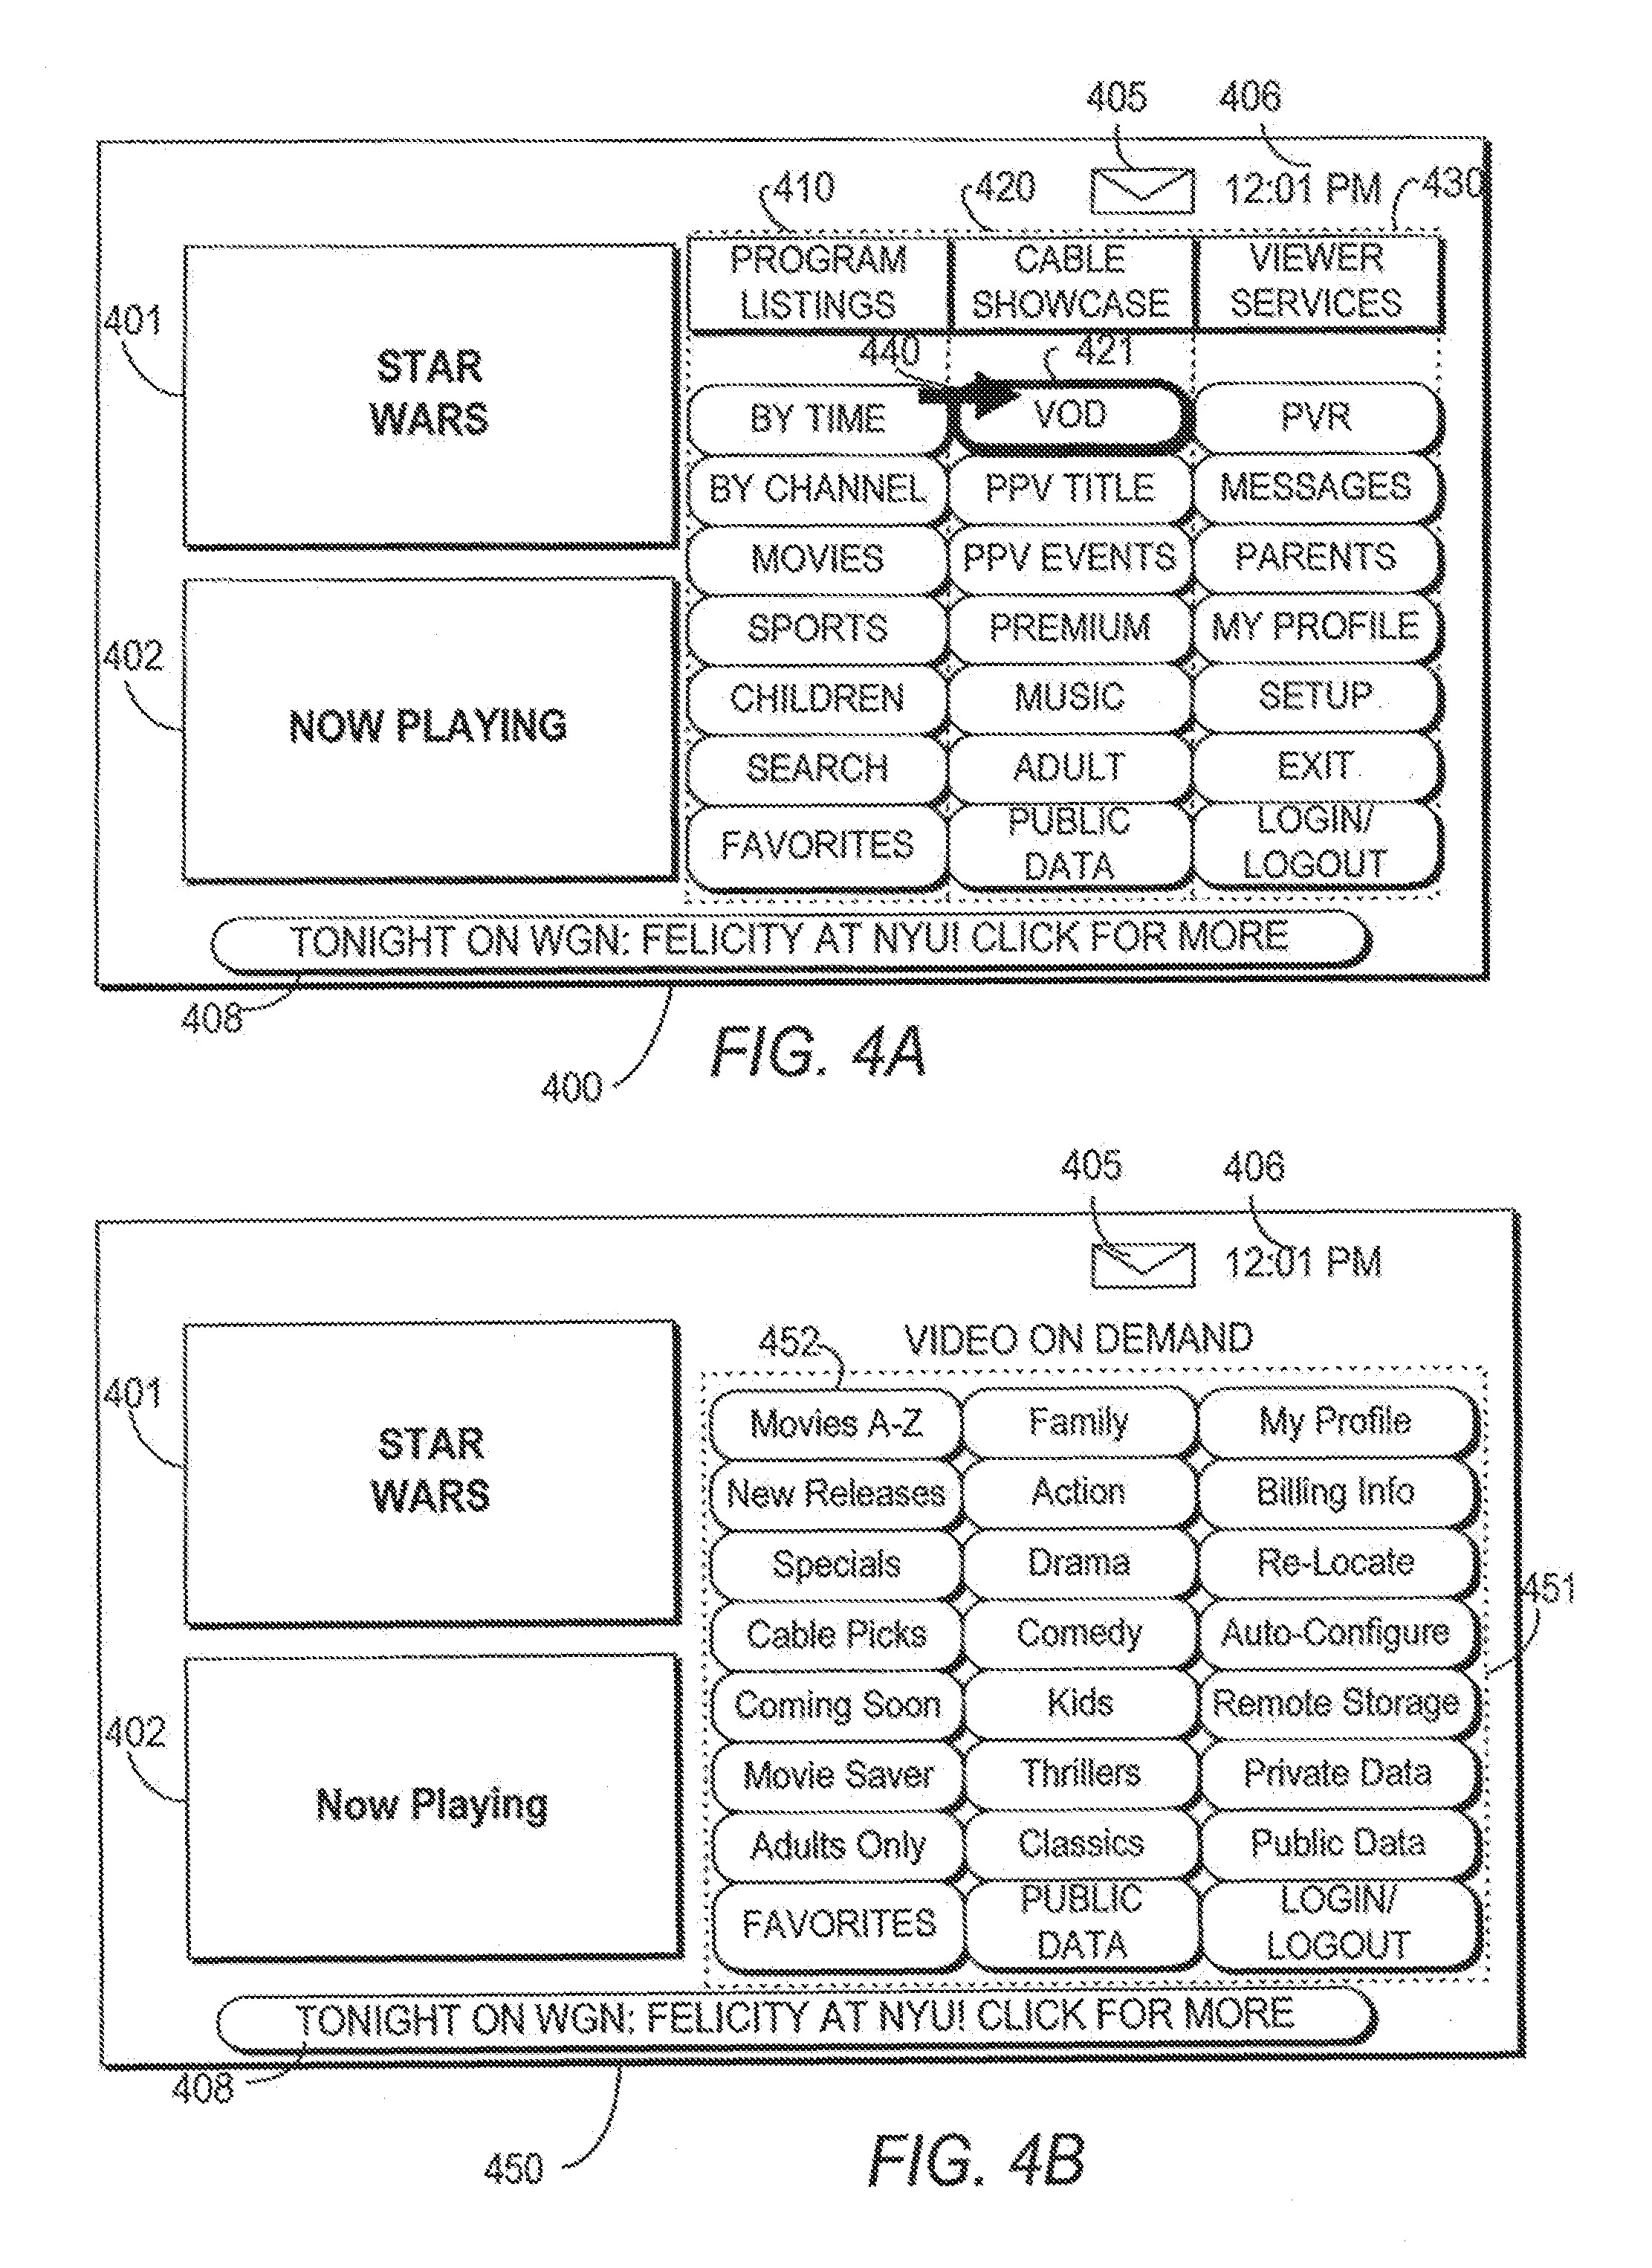 us9462317b2 systems and methods for providing storage of data on servers in an on demand media delivery system google patents